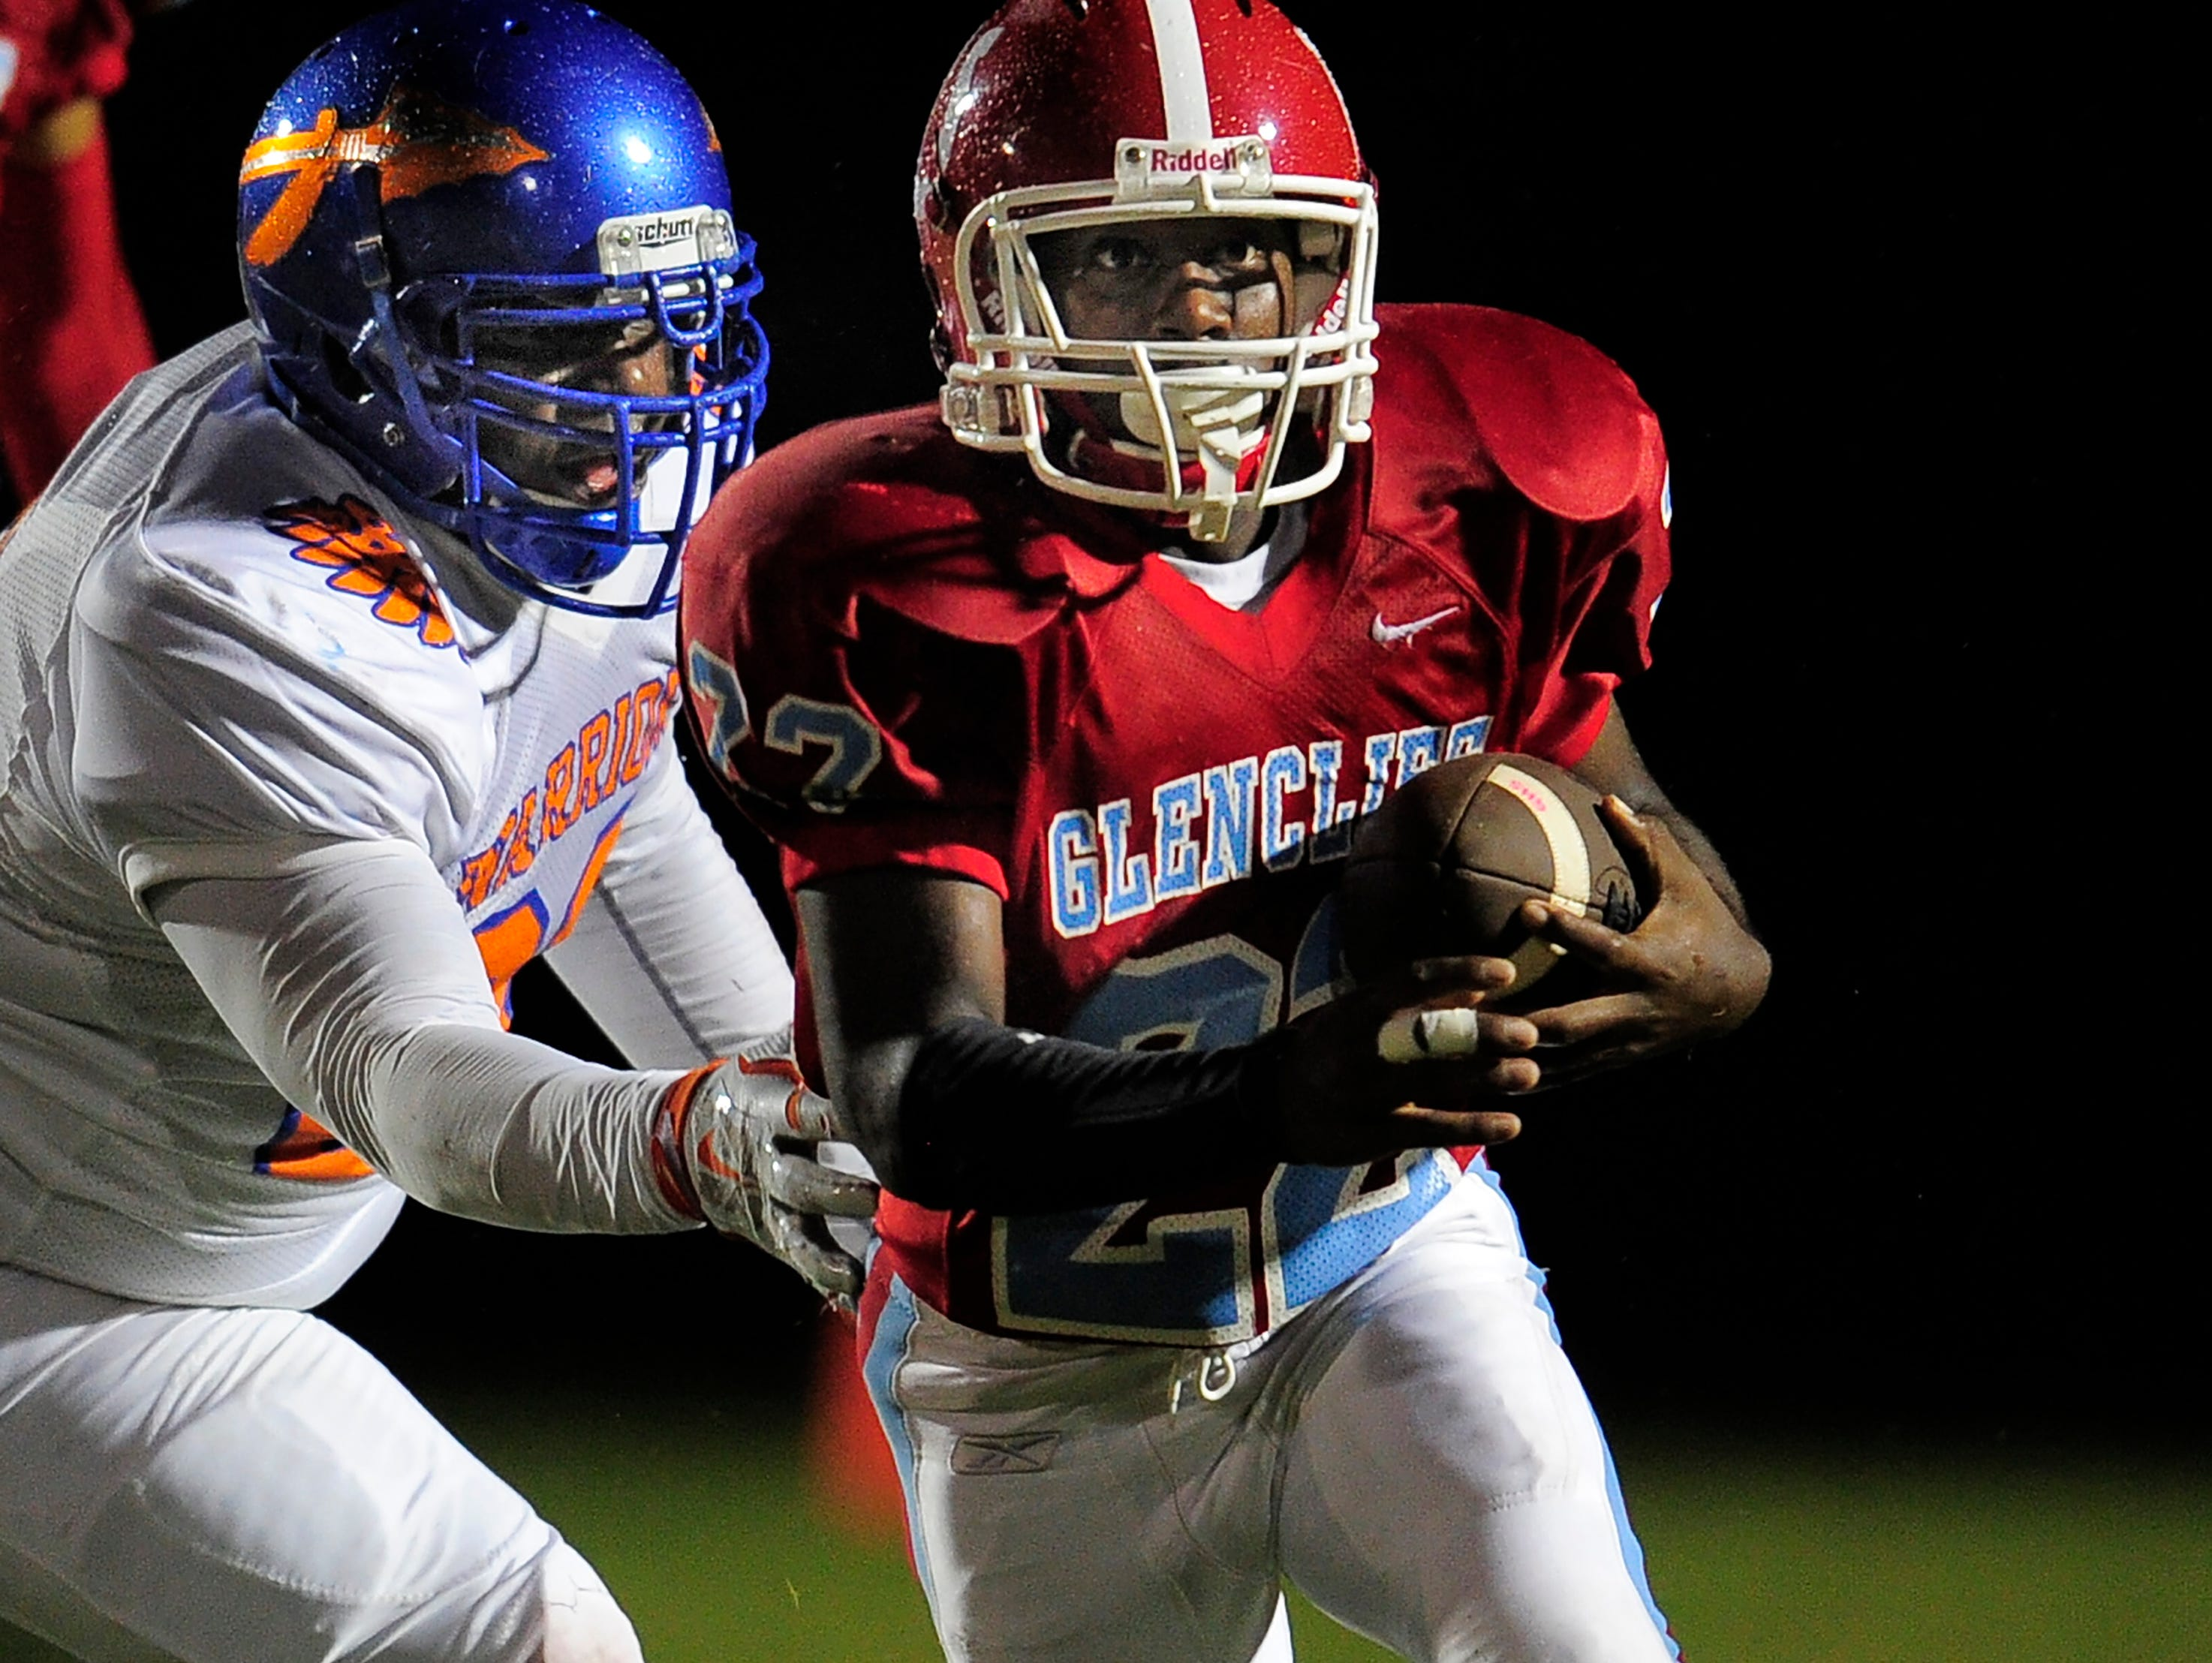 Glencliff running back Jonathan Jefferson (22) tries to get past a Hunters Lane defender during their game Friday.